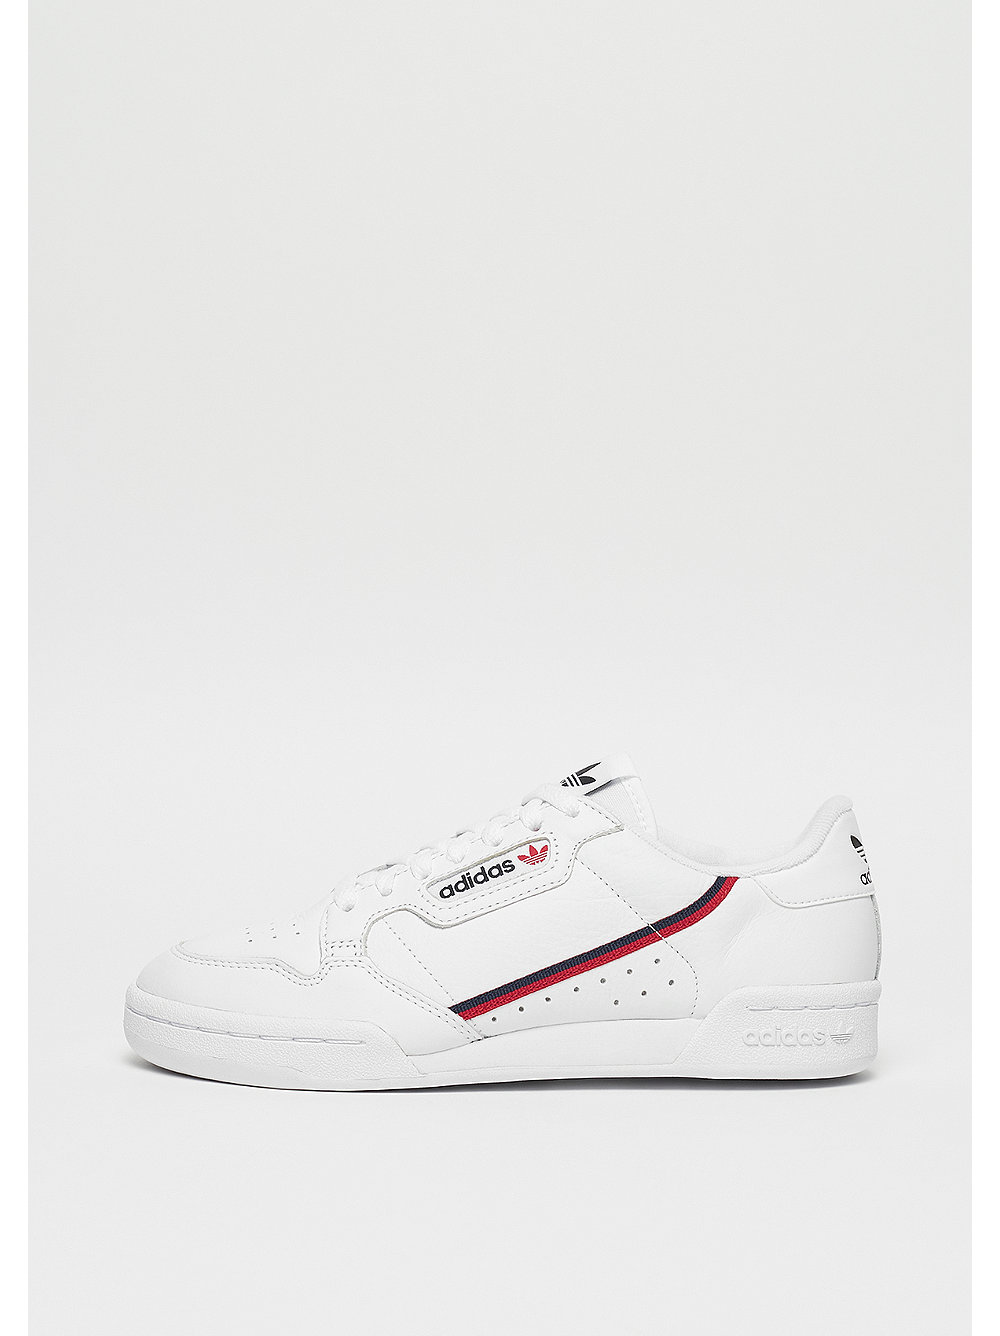 adidas Continental 80s ftwr white/scarlet/colle...